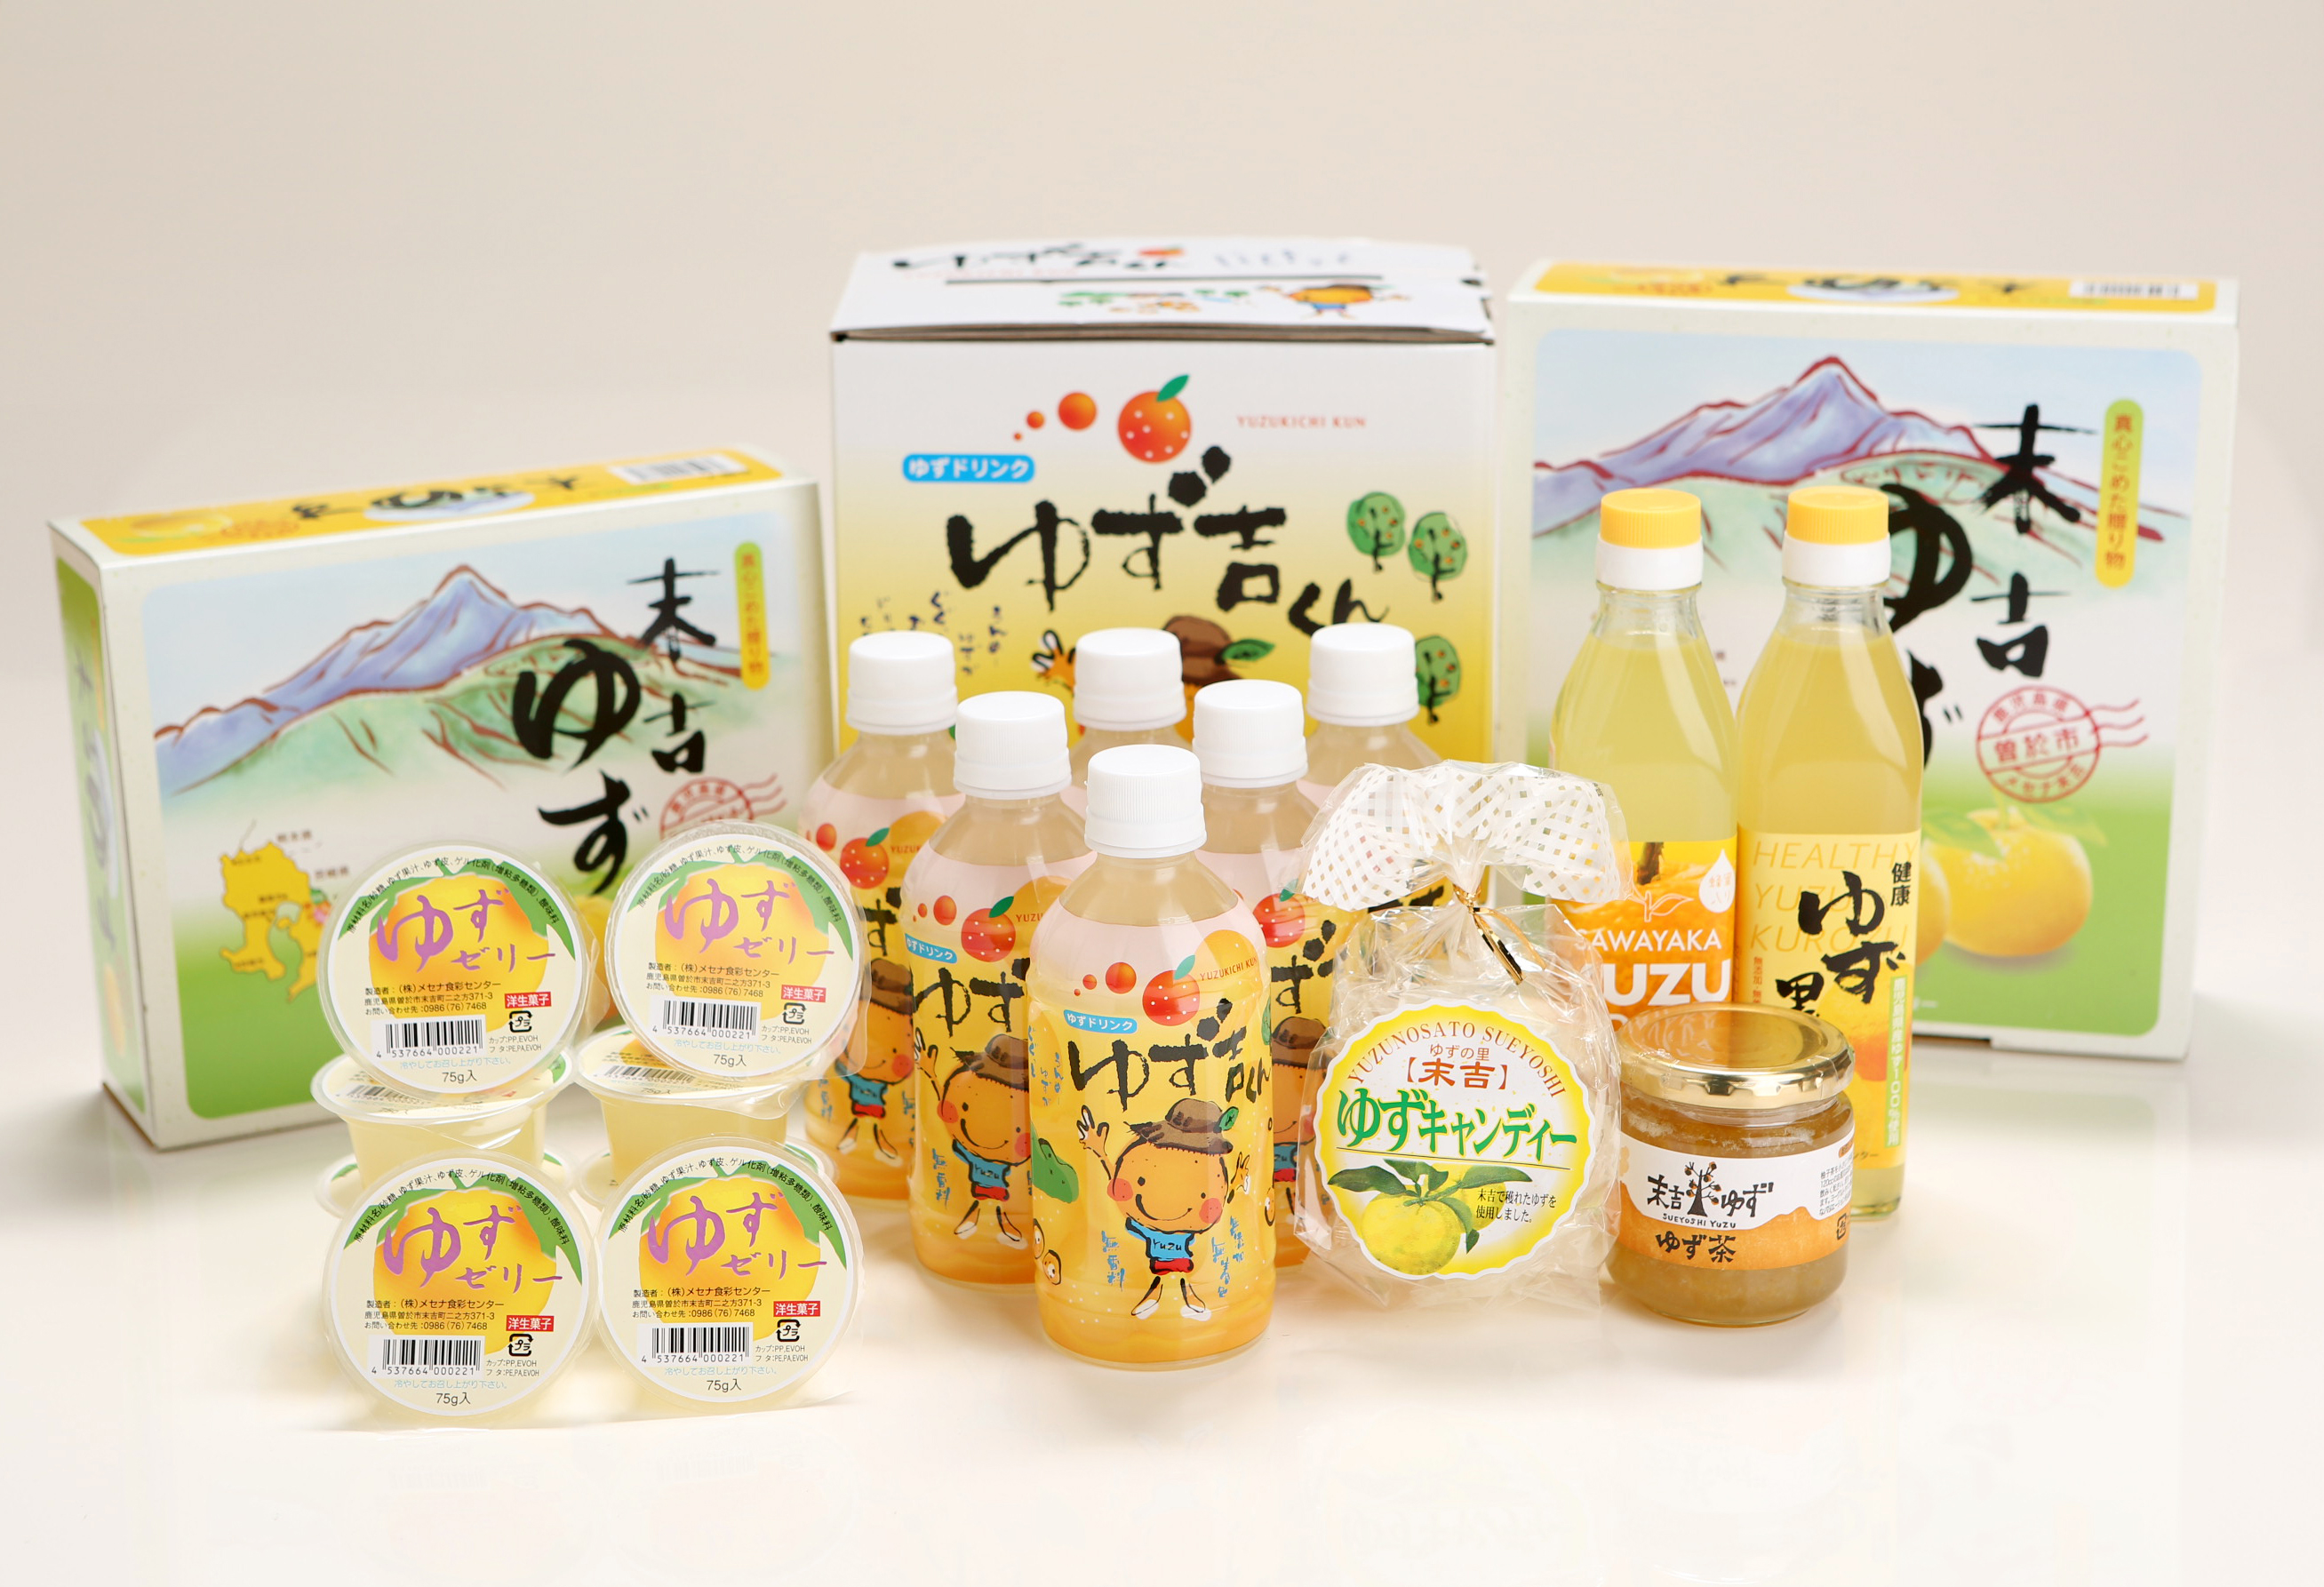 2-A-90 子どもも喜ぶゆず彩りセット(飲料編)